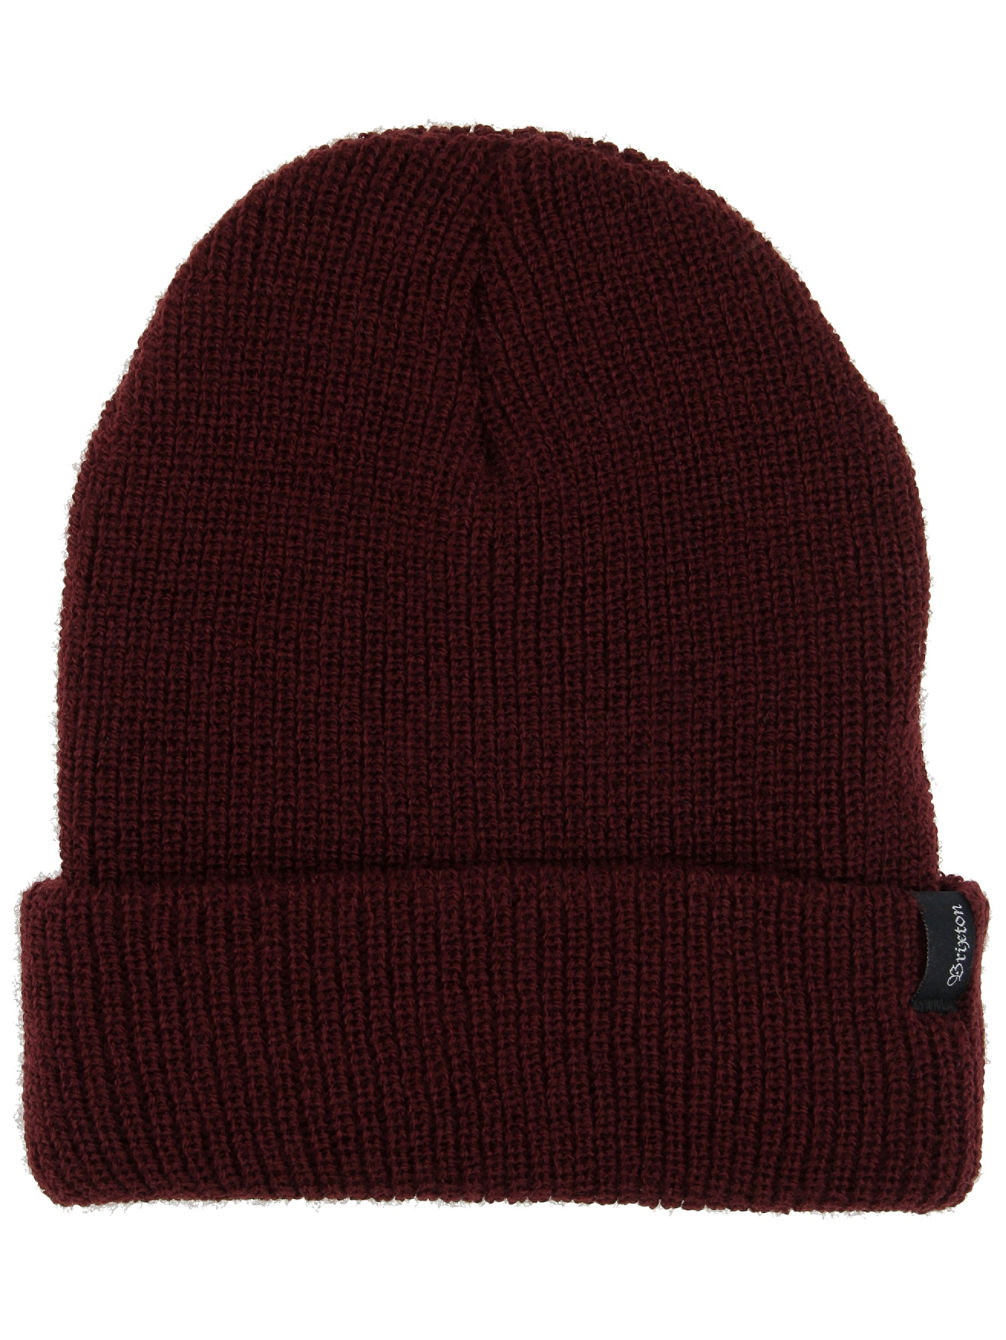 Buy Brixton Heist Beanie online at blue-tomato.com e3f390b17a32